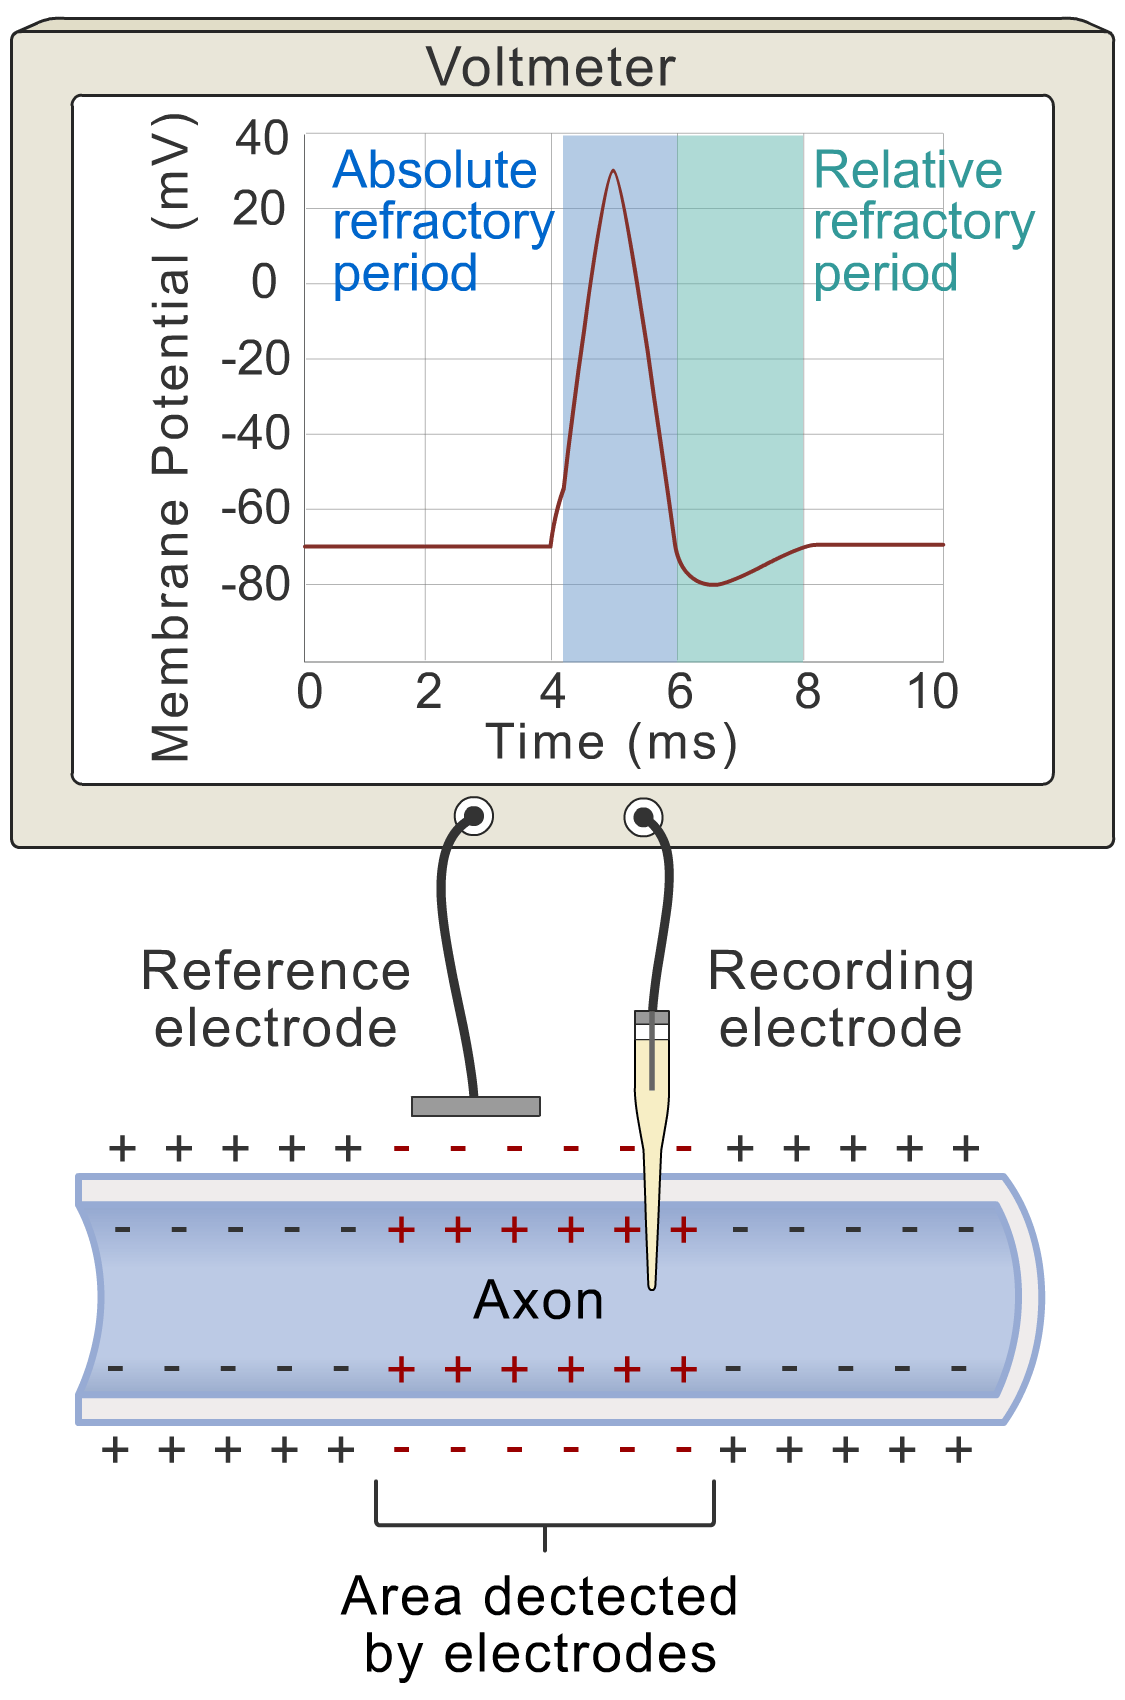 Action potential - refractory periods